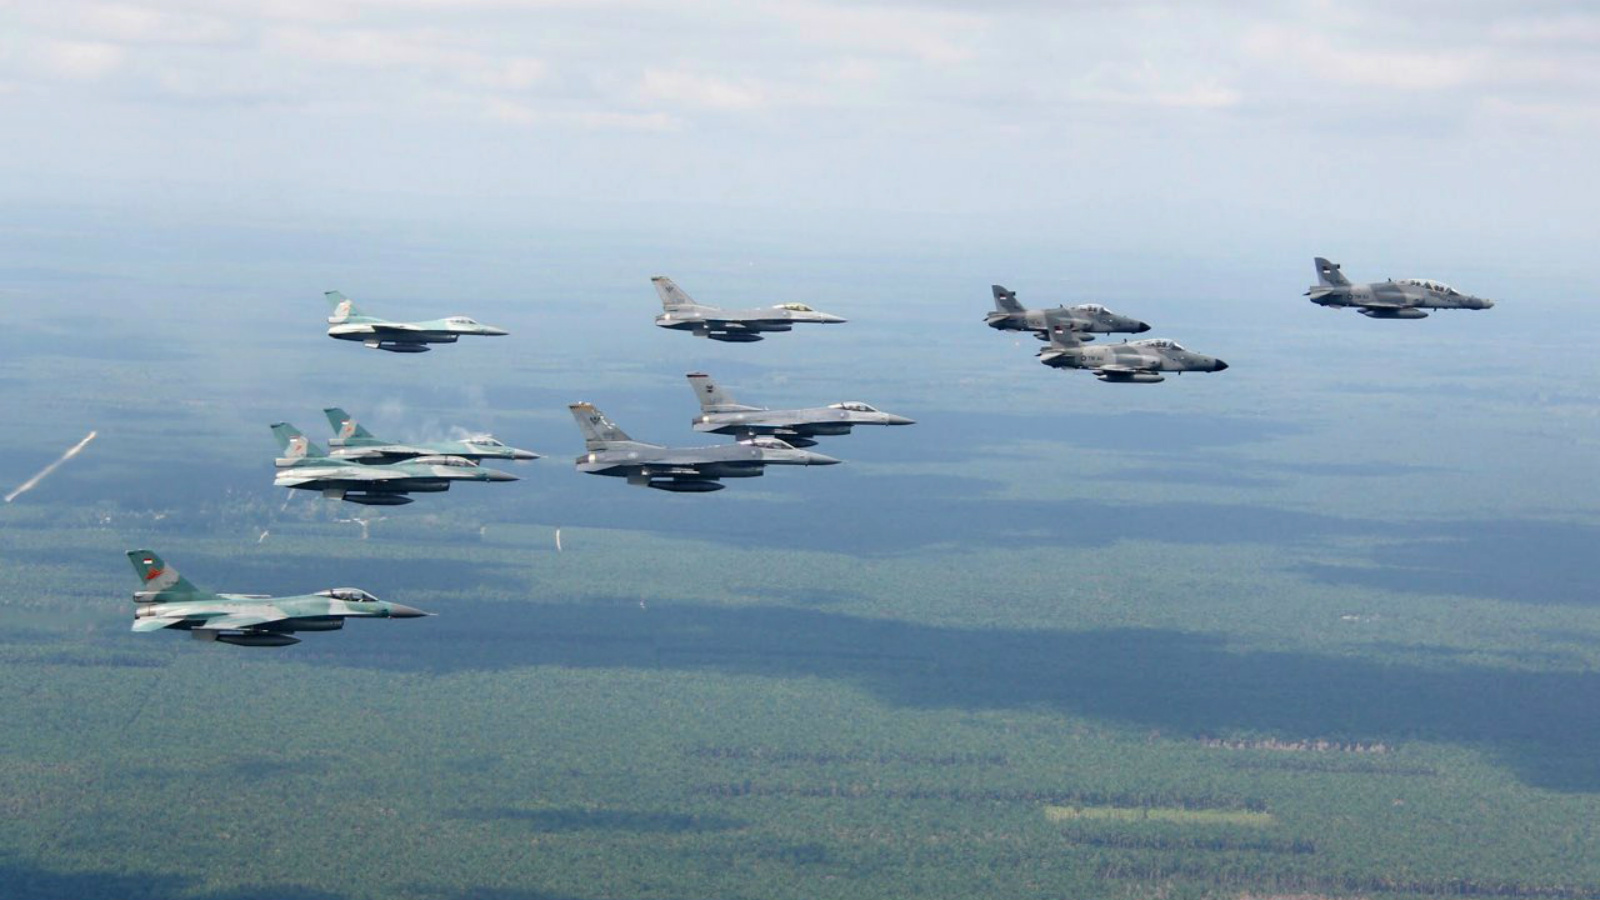 Singapore_and_Indonesia_Successfully_Conclude_20th_Edition_of_Bilateral_Air_Exercise